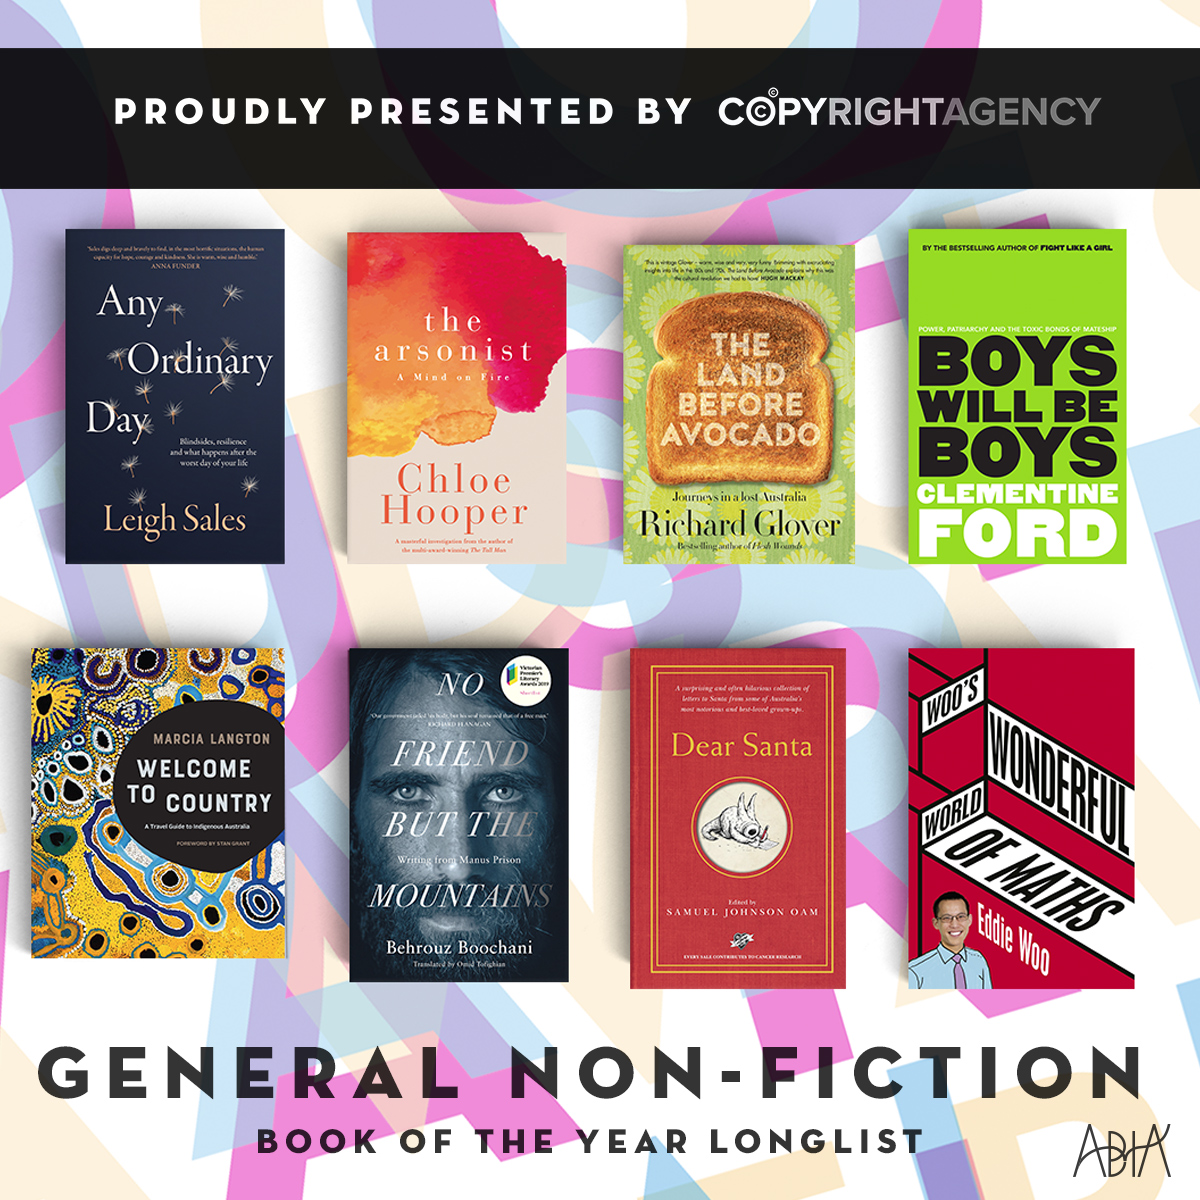 GENERAL NON-FICTION BOOK OF THE YEAR:    Any Ordinary Day,  Leigh Sales (Penguin Random House Australia, Hamish Hamilton)   Boys Will Be Boys , Clementine Ford (Allen & Unwin, Allen & Unwin)   Dear Santa , Samuel Johnson (Hachette Australia Pty Ltd, Hachette Australia)   No Friend But the Mountains: Writing from Manus Prison,  Behrouz Boochani, Omid Tofighian (translator) (Pan Macmillan Australia, Picador Australia)   The Arsonist , Chloe Hooper (Penguin Random House Australia, Hamish Hamilton)   The Land Before Avocado , Richard Glover (HarperCollins Publishers, ABC Books)   Welcome to Country: A Travel Guide to Indigenous Australia , Marcia Langton (Hardie Grant Publishing, Hardie Grant Travel)   Woo's Wonderful World of Maths , Eddie Woo (Pan Macmillan Australia, Macmillan Australia)